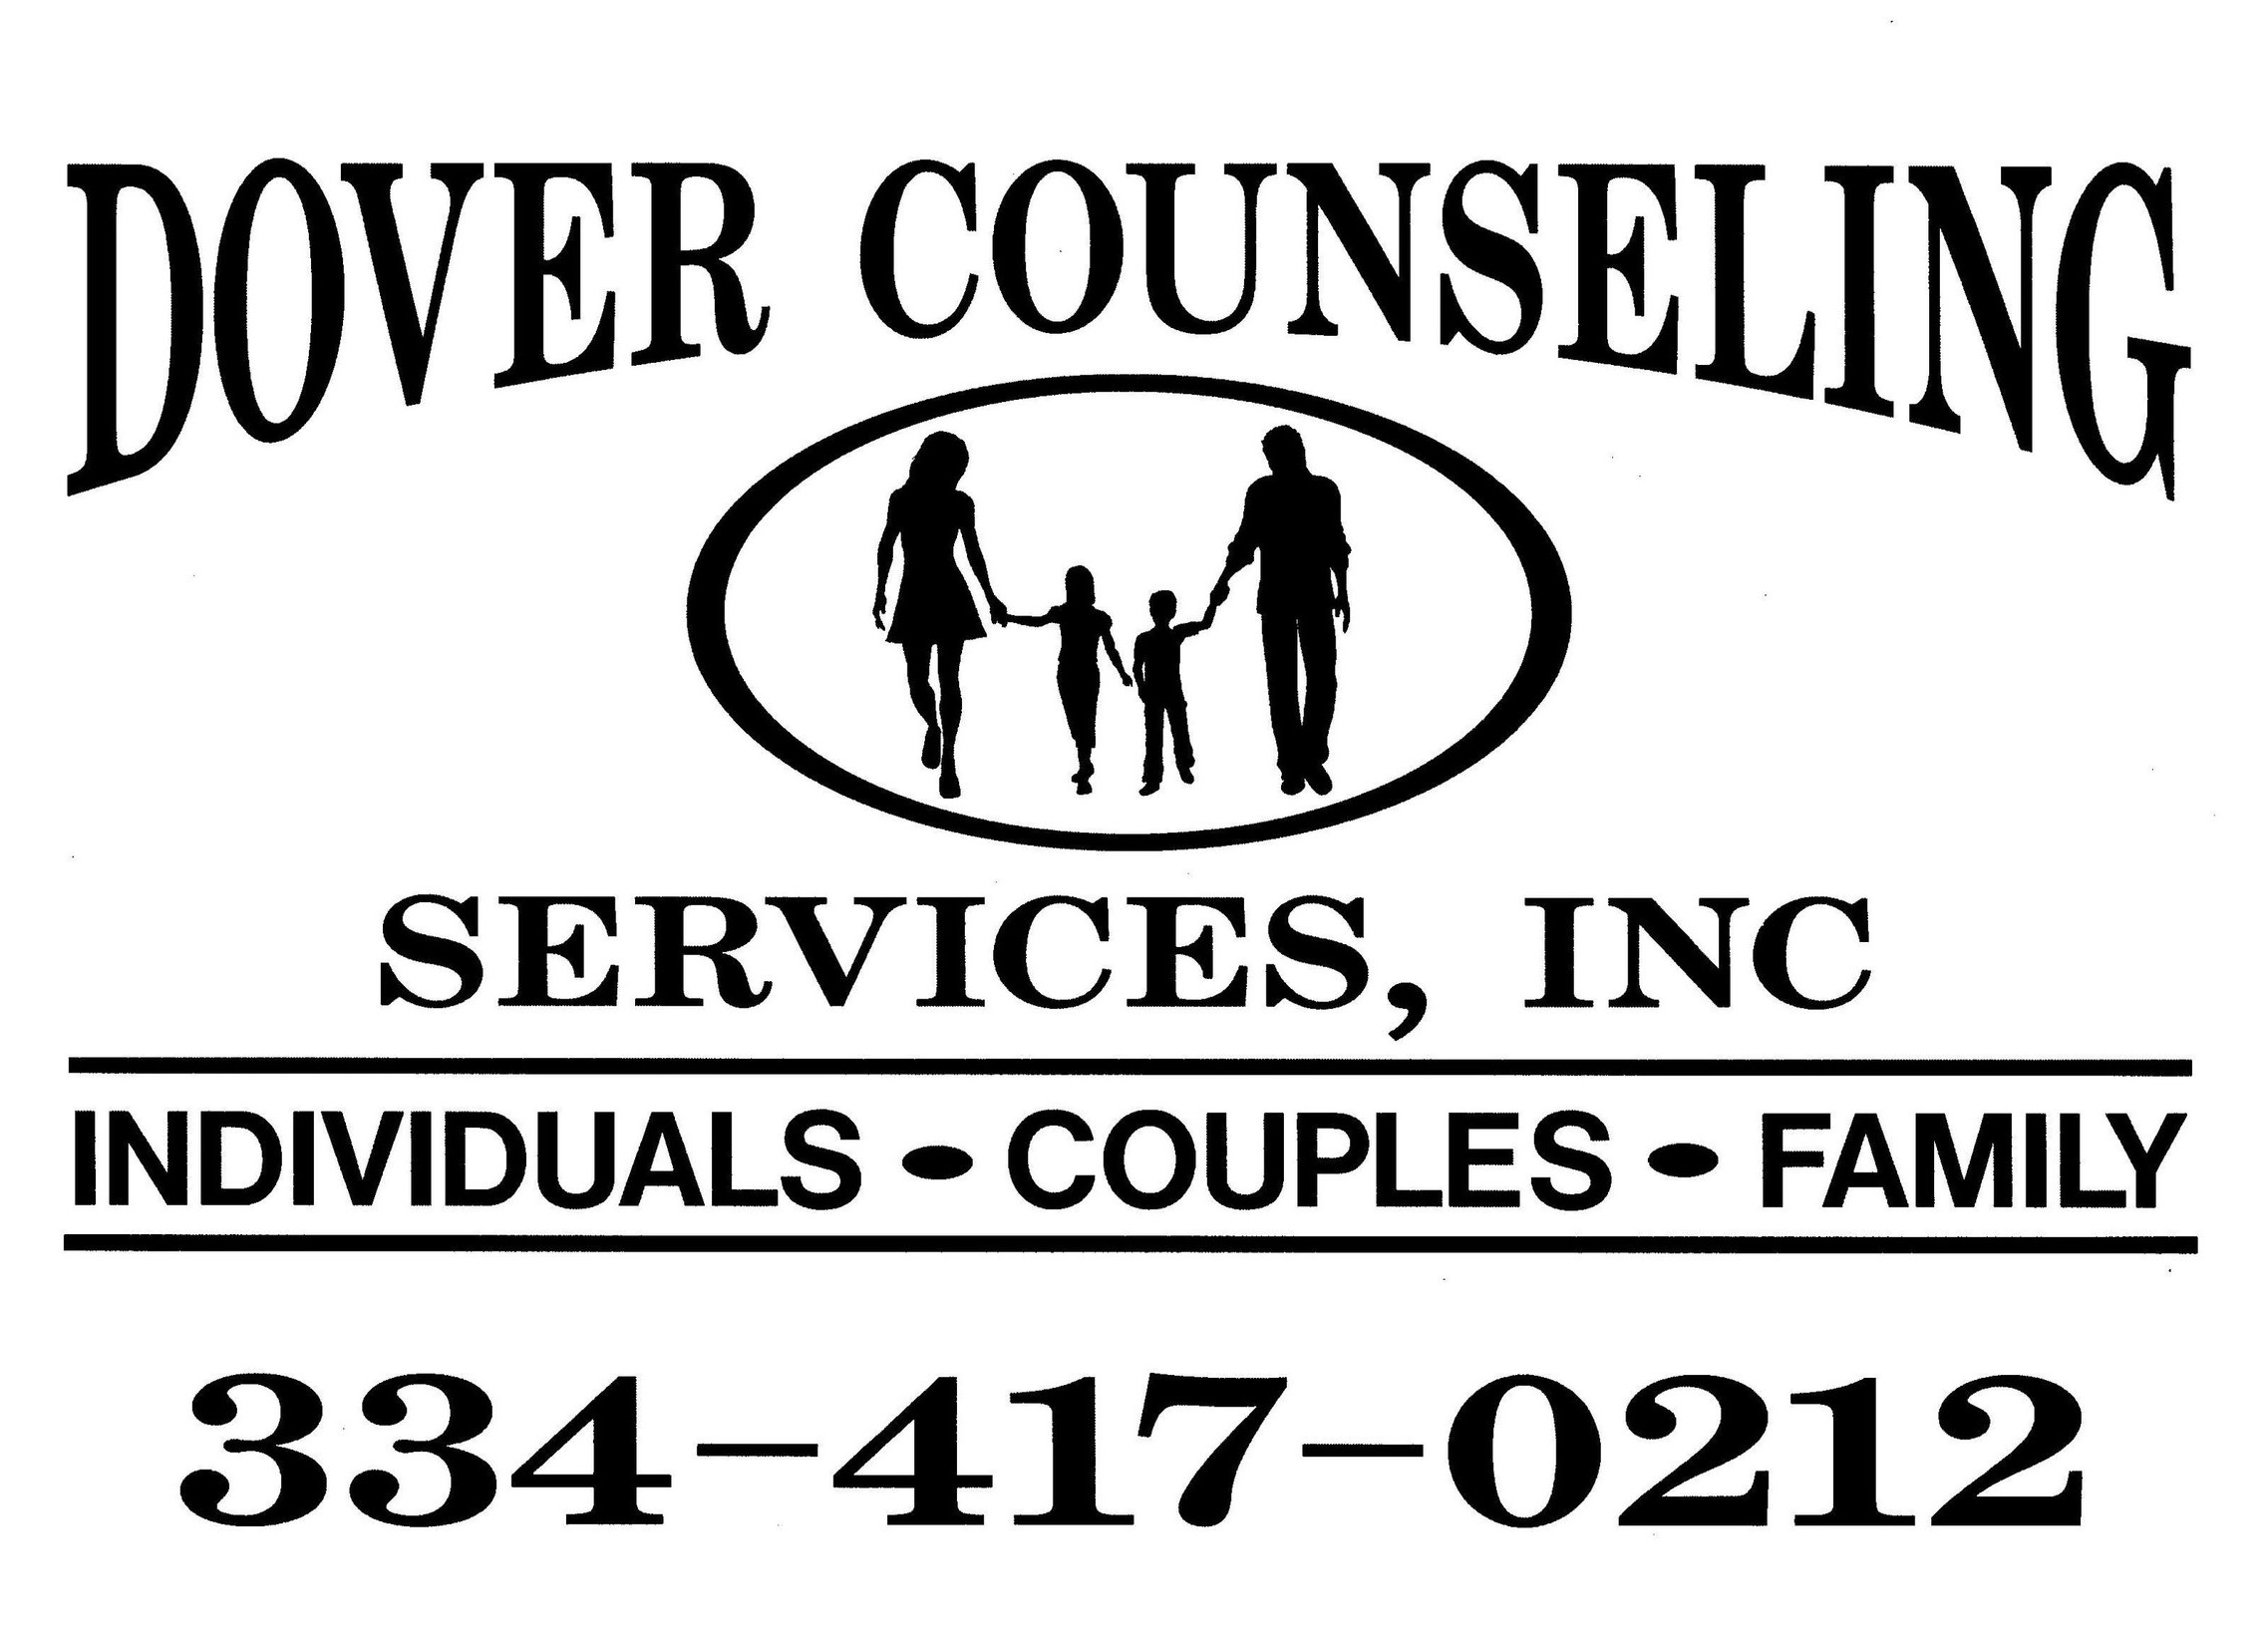 - Dover Counseling Services, Inc. was birthed out of the heart of Amy Dover on January 3rd, 2015. In the beginning, Dover Counseling was housed on the second floor of the Enterprise Pediatric Clinic. Due to rapid growth only two months after opening, Amy realized that she needed additional staff and grew from a solo practice to a group practice of seven therapists. Each of the therapists at Dover Counseling Services believe whole-heartedly that they have been called into this profession to serve others. In January of 2017, Dover Counseling Services, Inc. moved to its current location in order to have more space for therapists and to provide additional services to clients. The staff and therapists at Dover Counseling Services, Inc. strive to offer the best counseling services in the Wiregrass area.